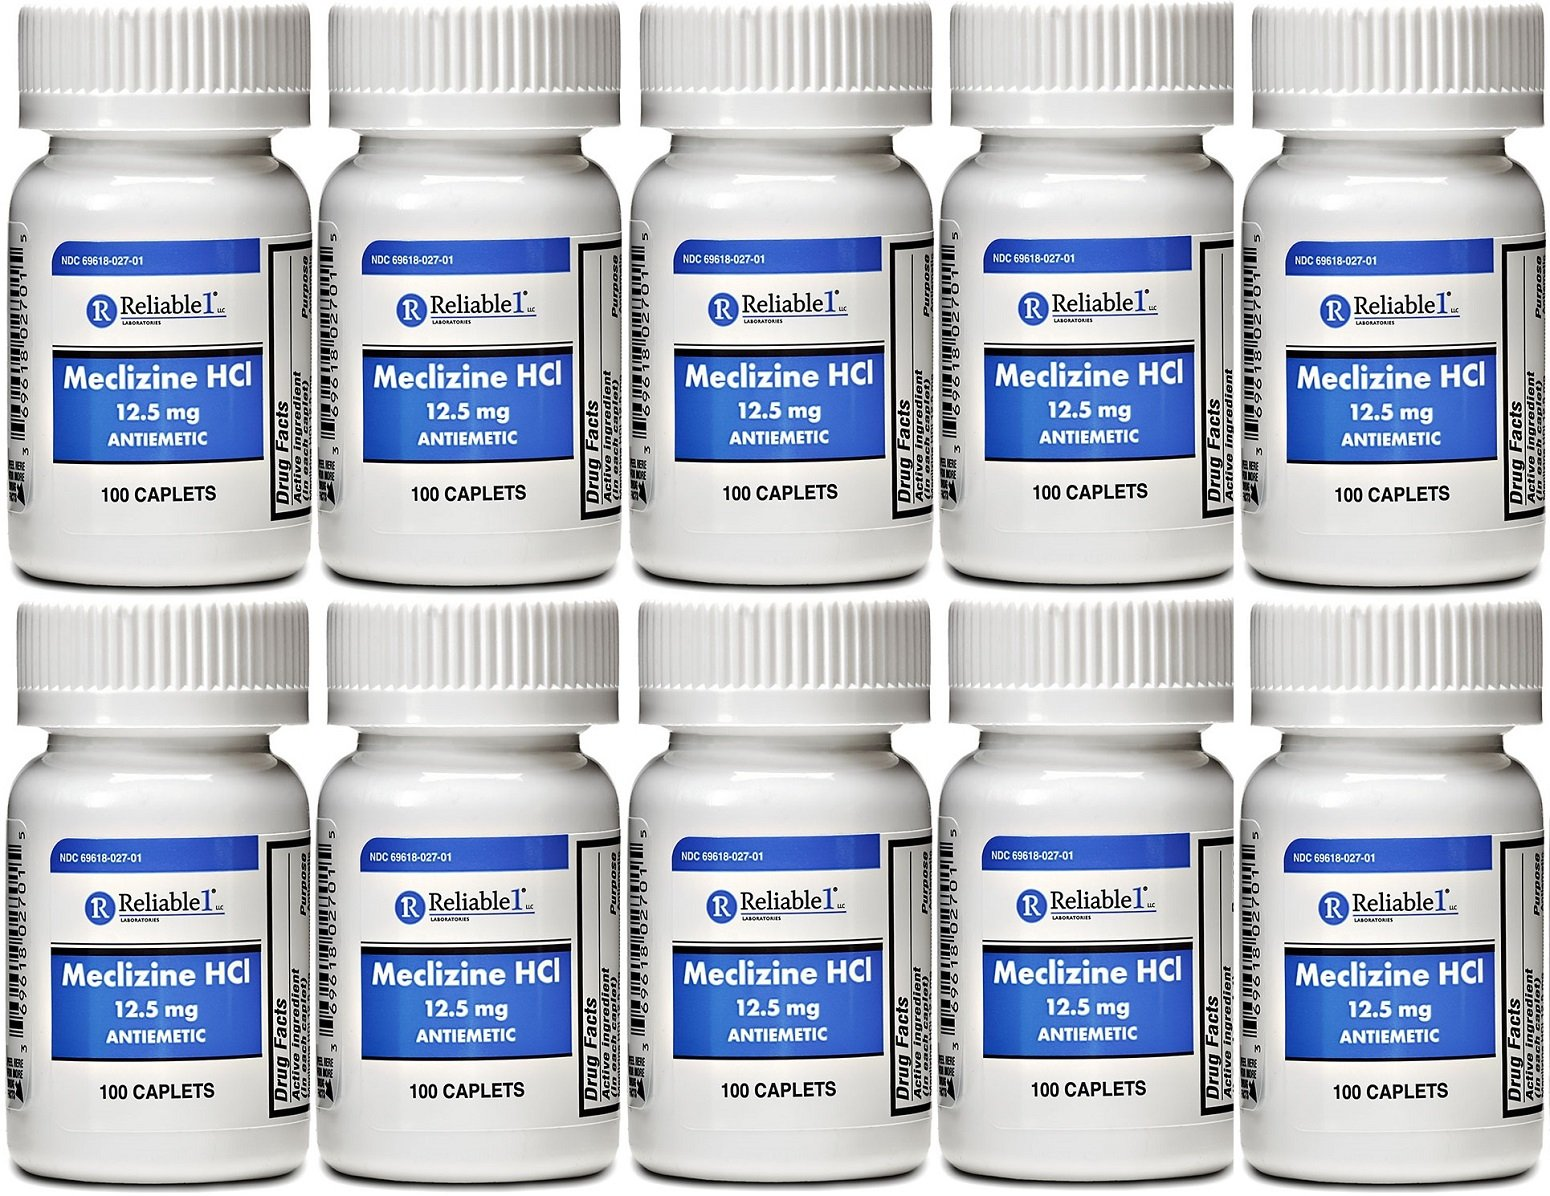 Meclizine 12.5 mg Antiemetic, Motion Sickness 100 Caplets PACK of 10 by Reliable-1 Laboratories